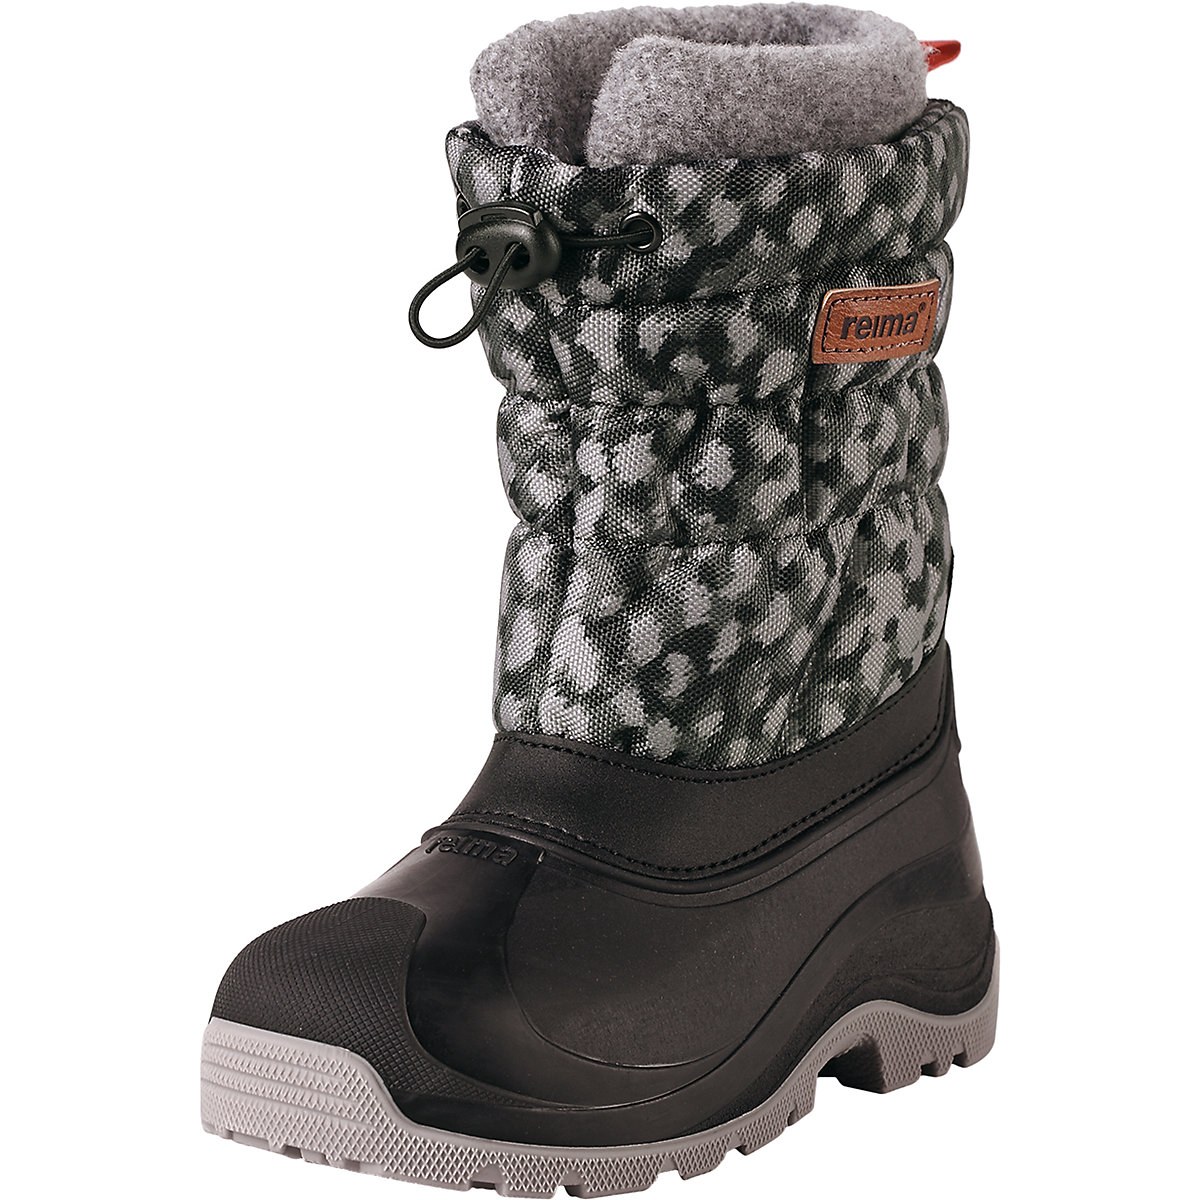 REIMA Boots 8624852 for boys winter boy baby shoes child snow boots male shoes plus velvet child girls big boy baby winter boots ankle boots 2016 winter